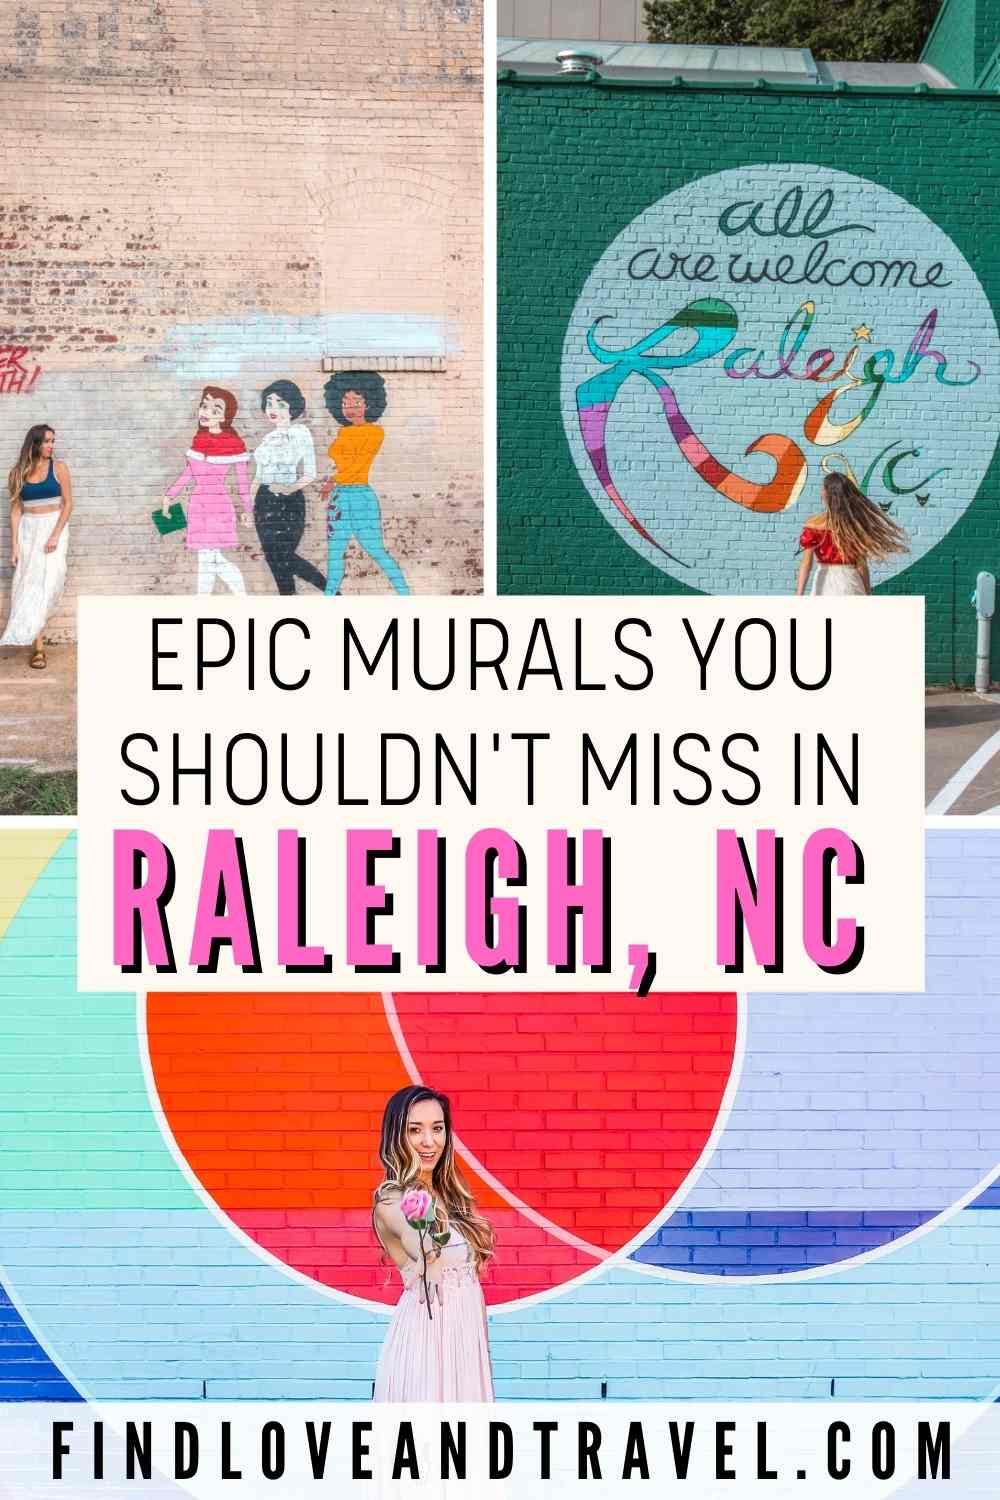 Photo-worthy Murals in Raleigh, NC